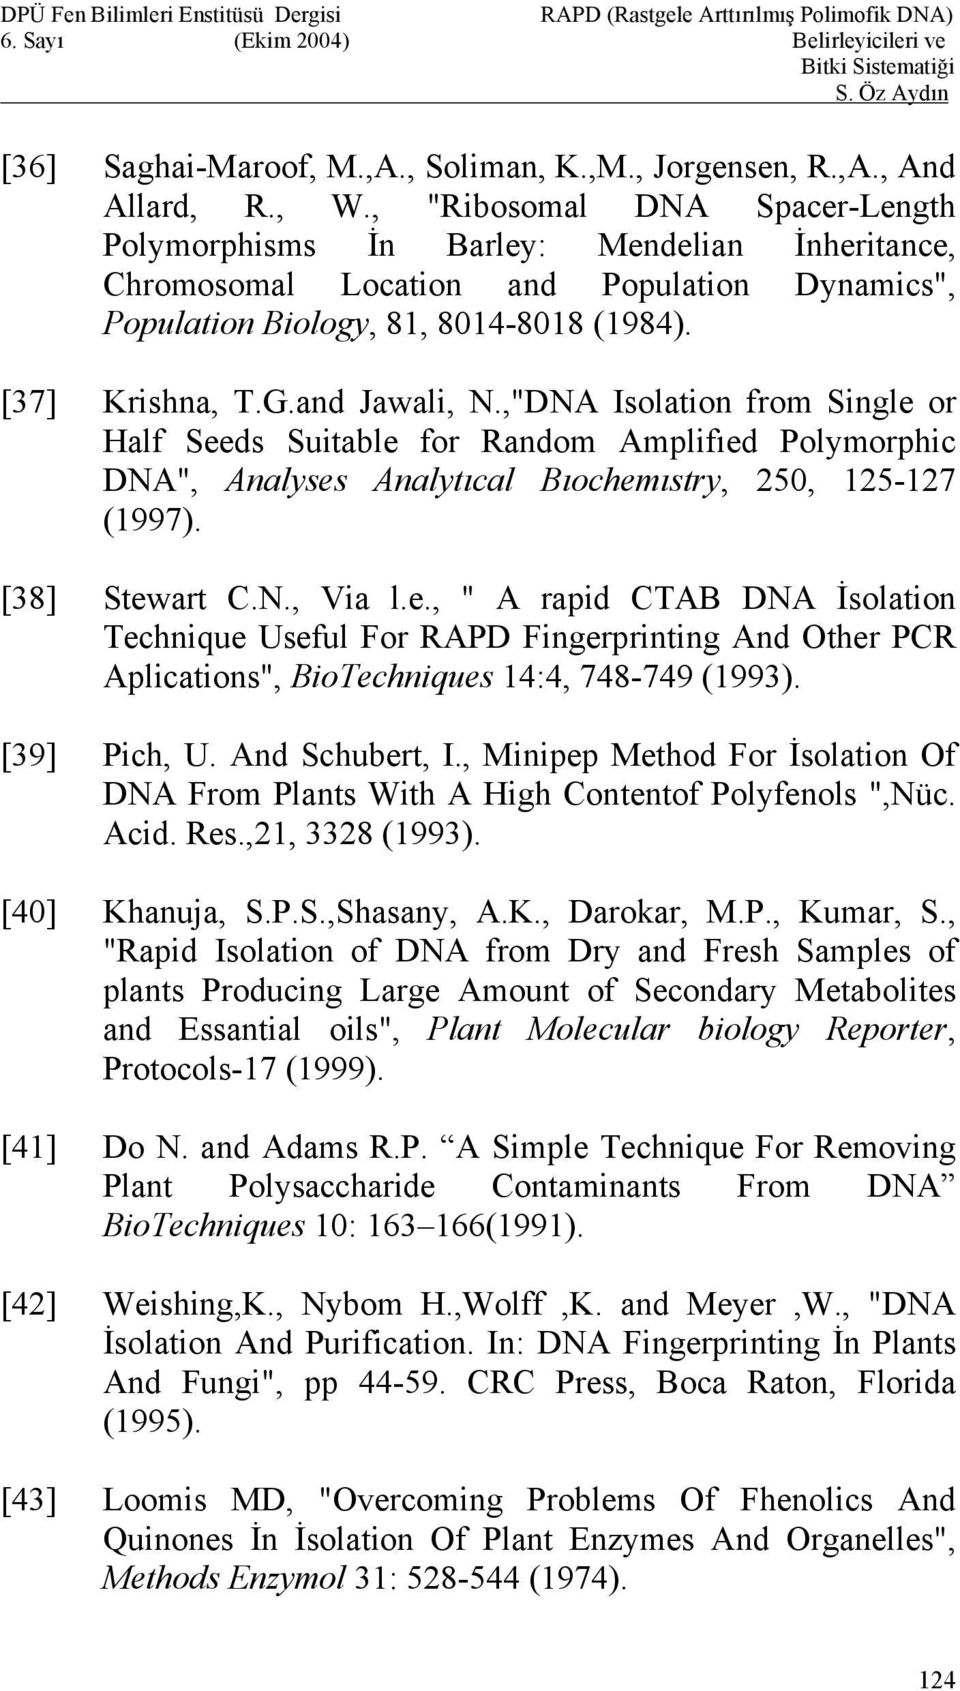 ",""DNA Isolation from Single or Half Seeds Suitable for Random Amplifıed Polymorphic DNA"", Analyses Analytıcal Bıochemıstry, 250, 125-127 (1997). [38] Stewart C.N., Via l.e., "" A rapid CTAB DNA İsolation Technique Useful For RAPD Fingerprinting And Other PCR Aplications"", BioTechniques 14:4, 748-749 (1993)."